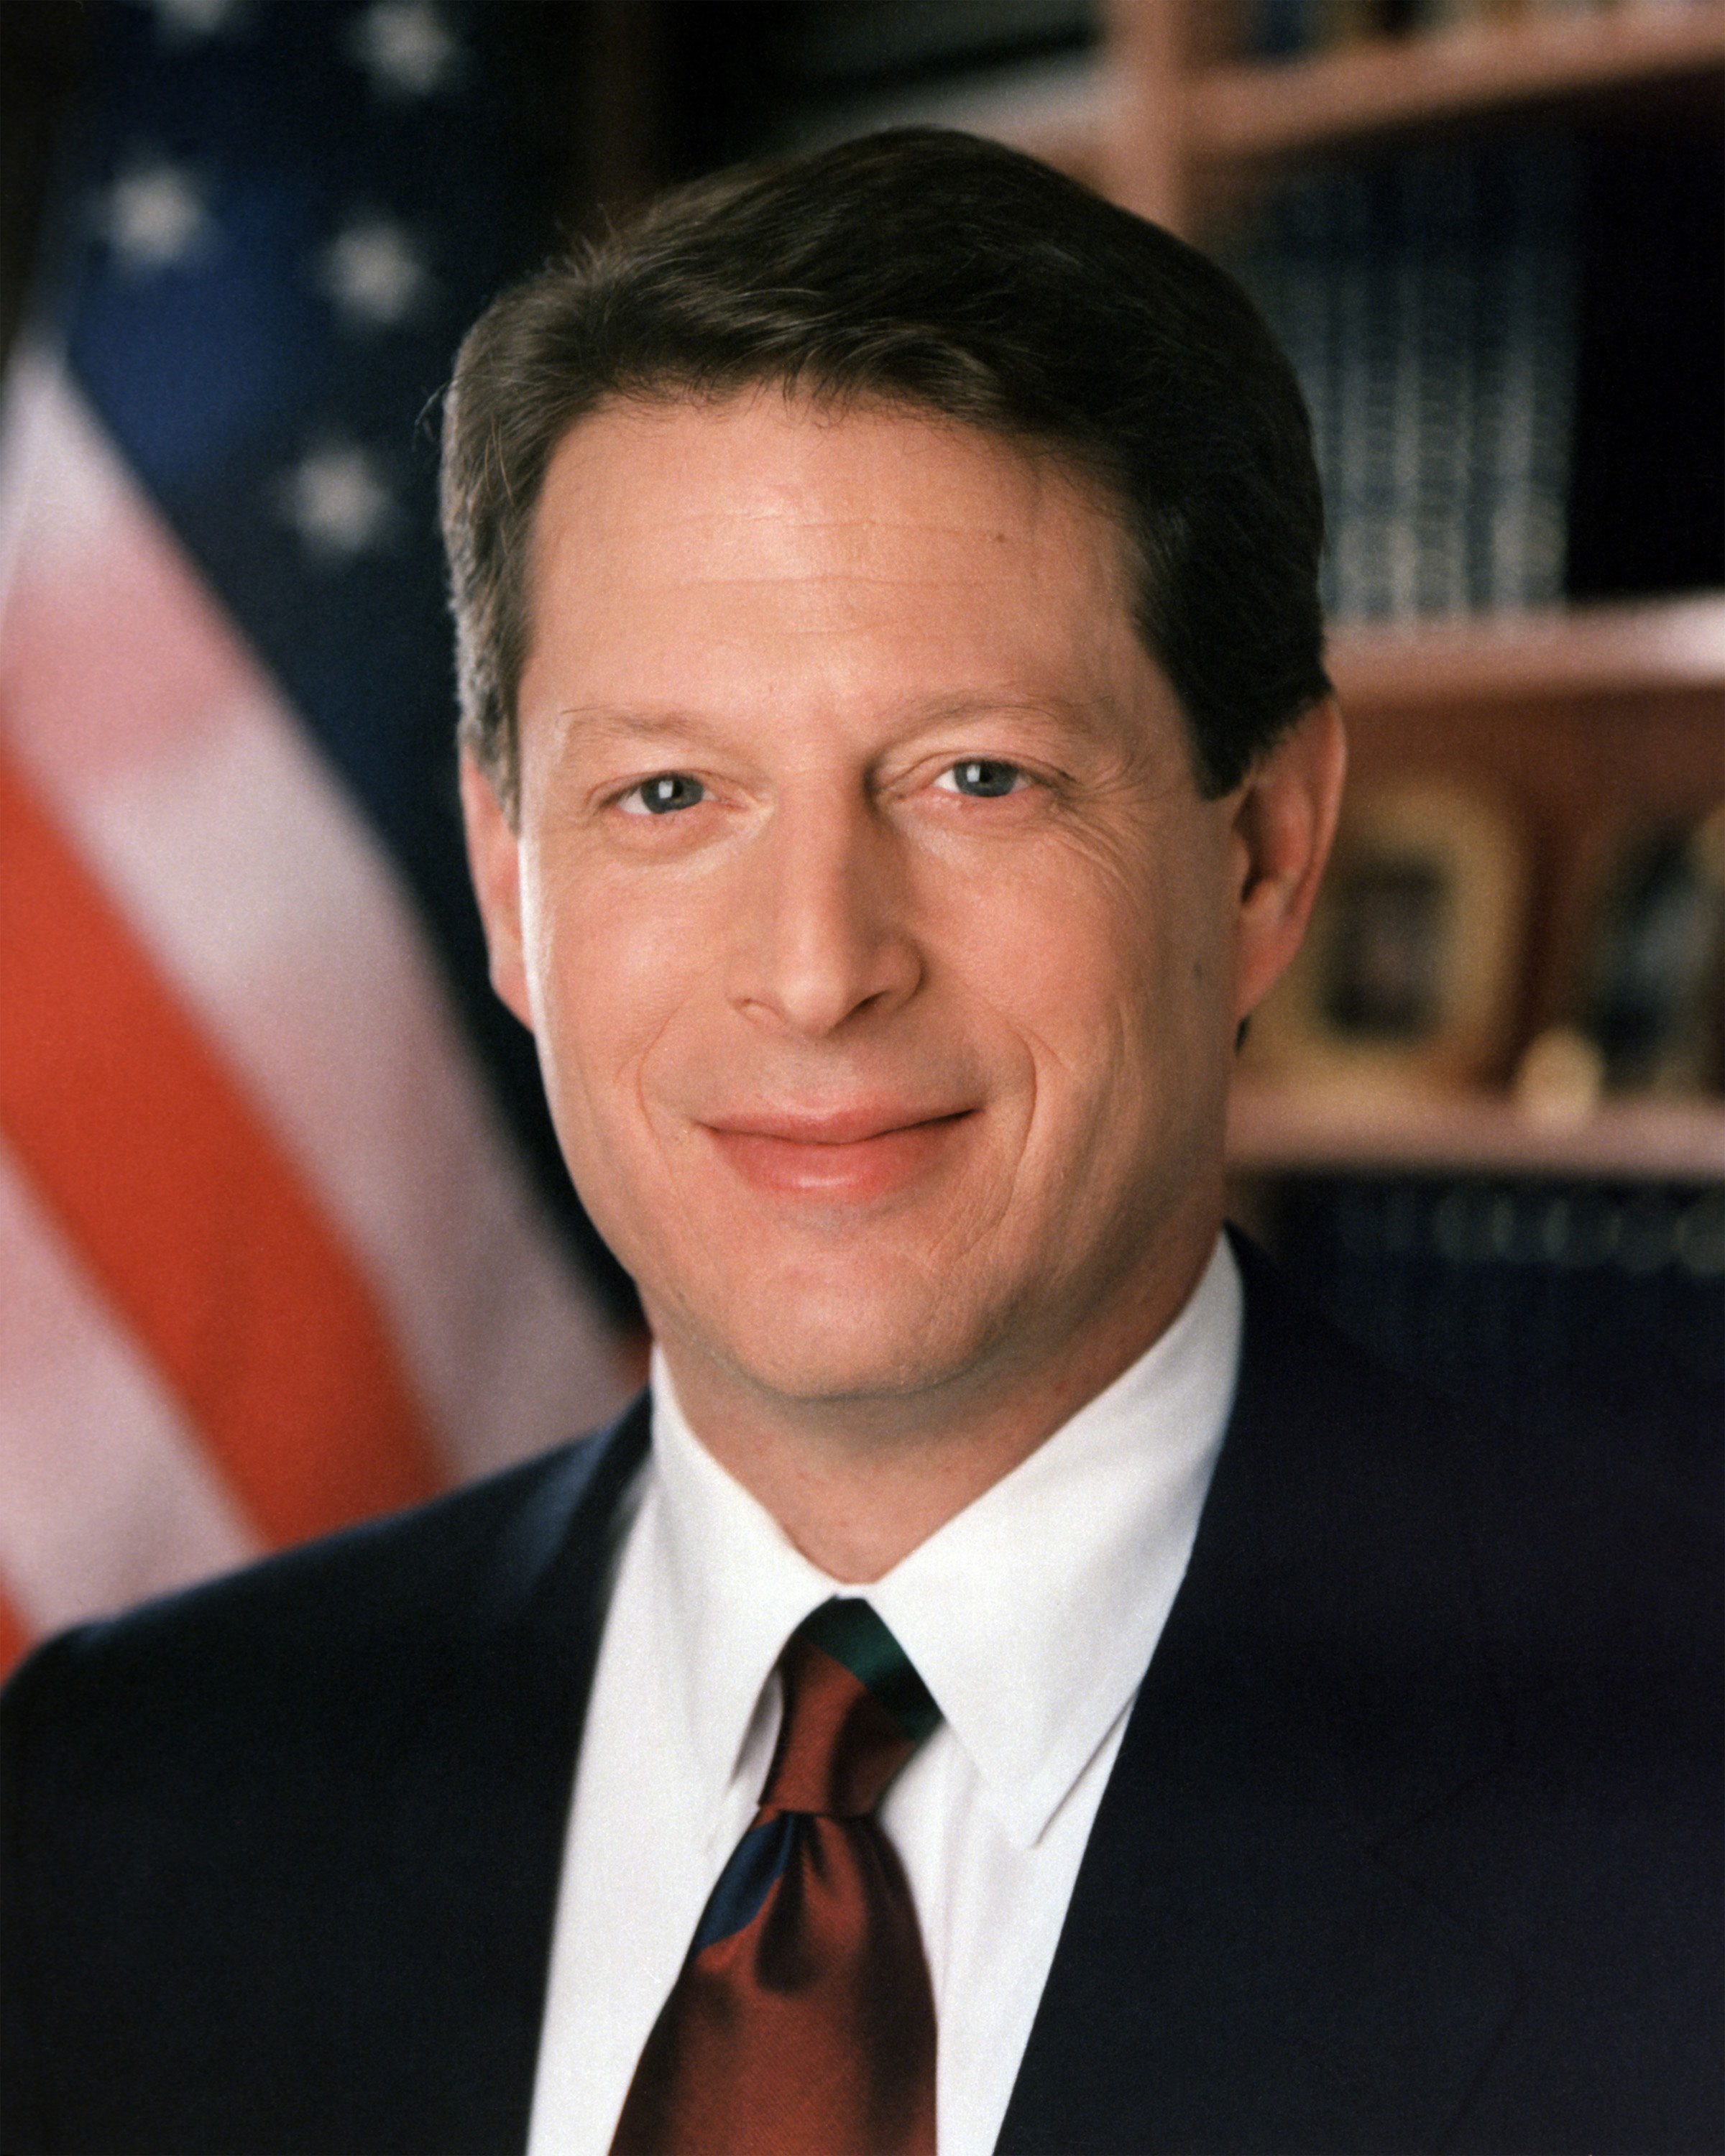 Al_Gore%2C_Vice_President_of_the_United_States%2C_official_portrait_1994.jpg